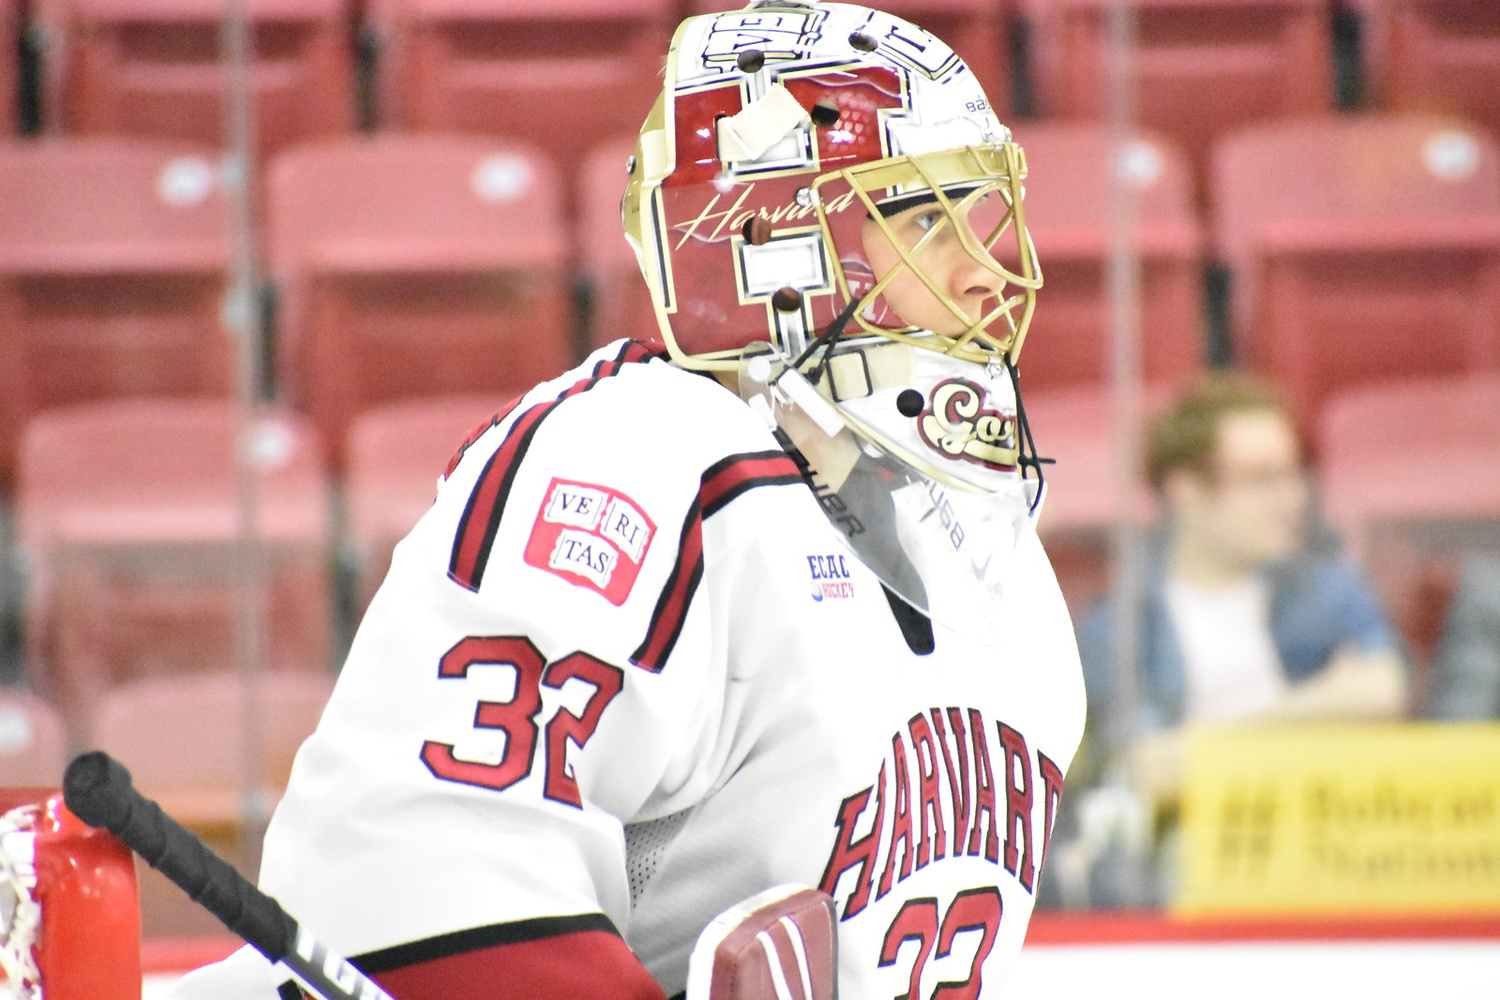 With senior starter Michael Lackey on the shelf due to a lower-body injury, junior Cam Gornet stepped up and made 28 saves in his first win of the season.